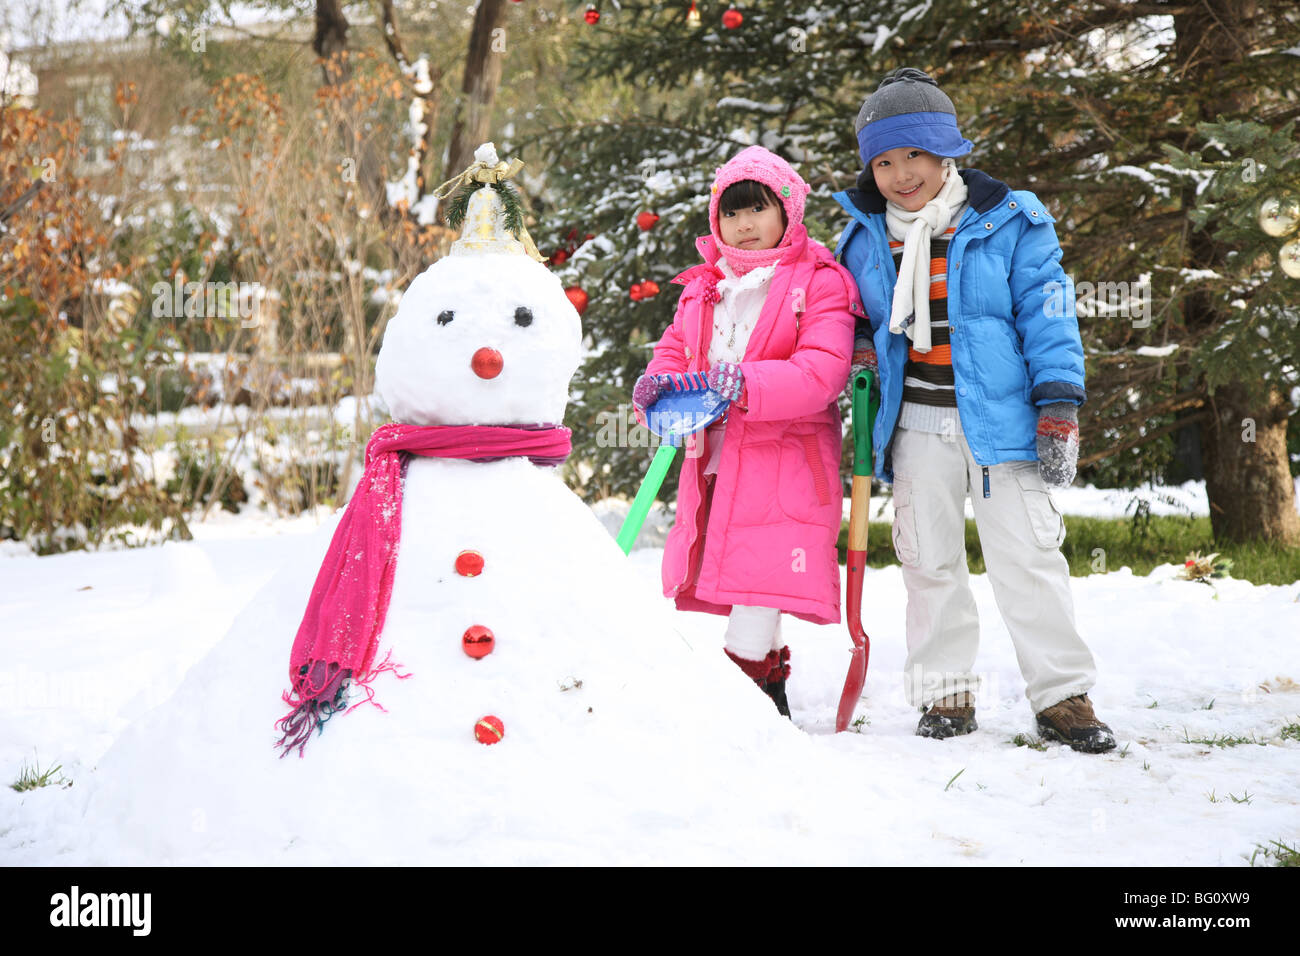 boy and girl next to snowman - Stock Image